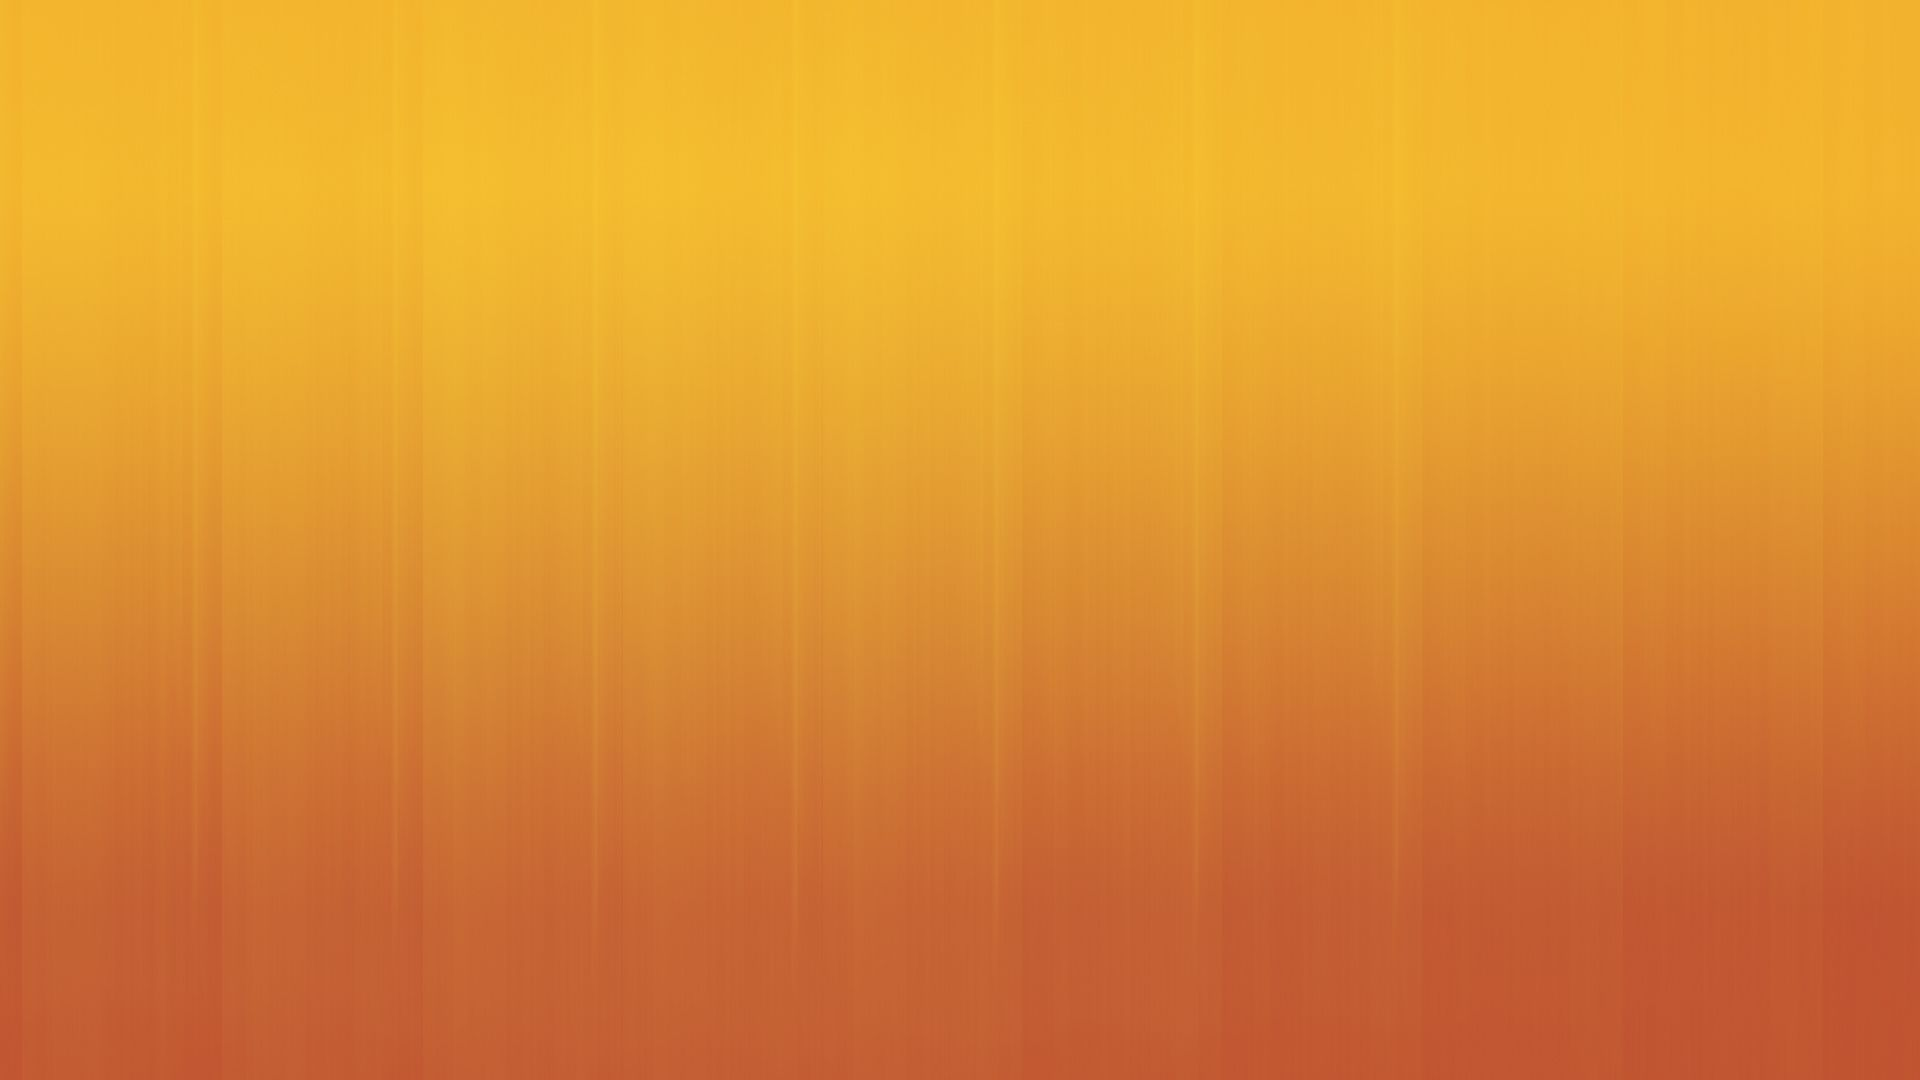 wallpaper Solid color backgrounds, Yellow painting